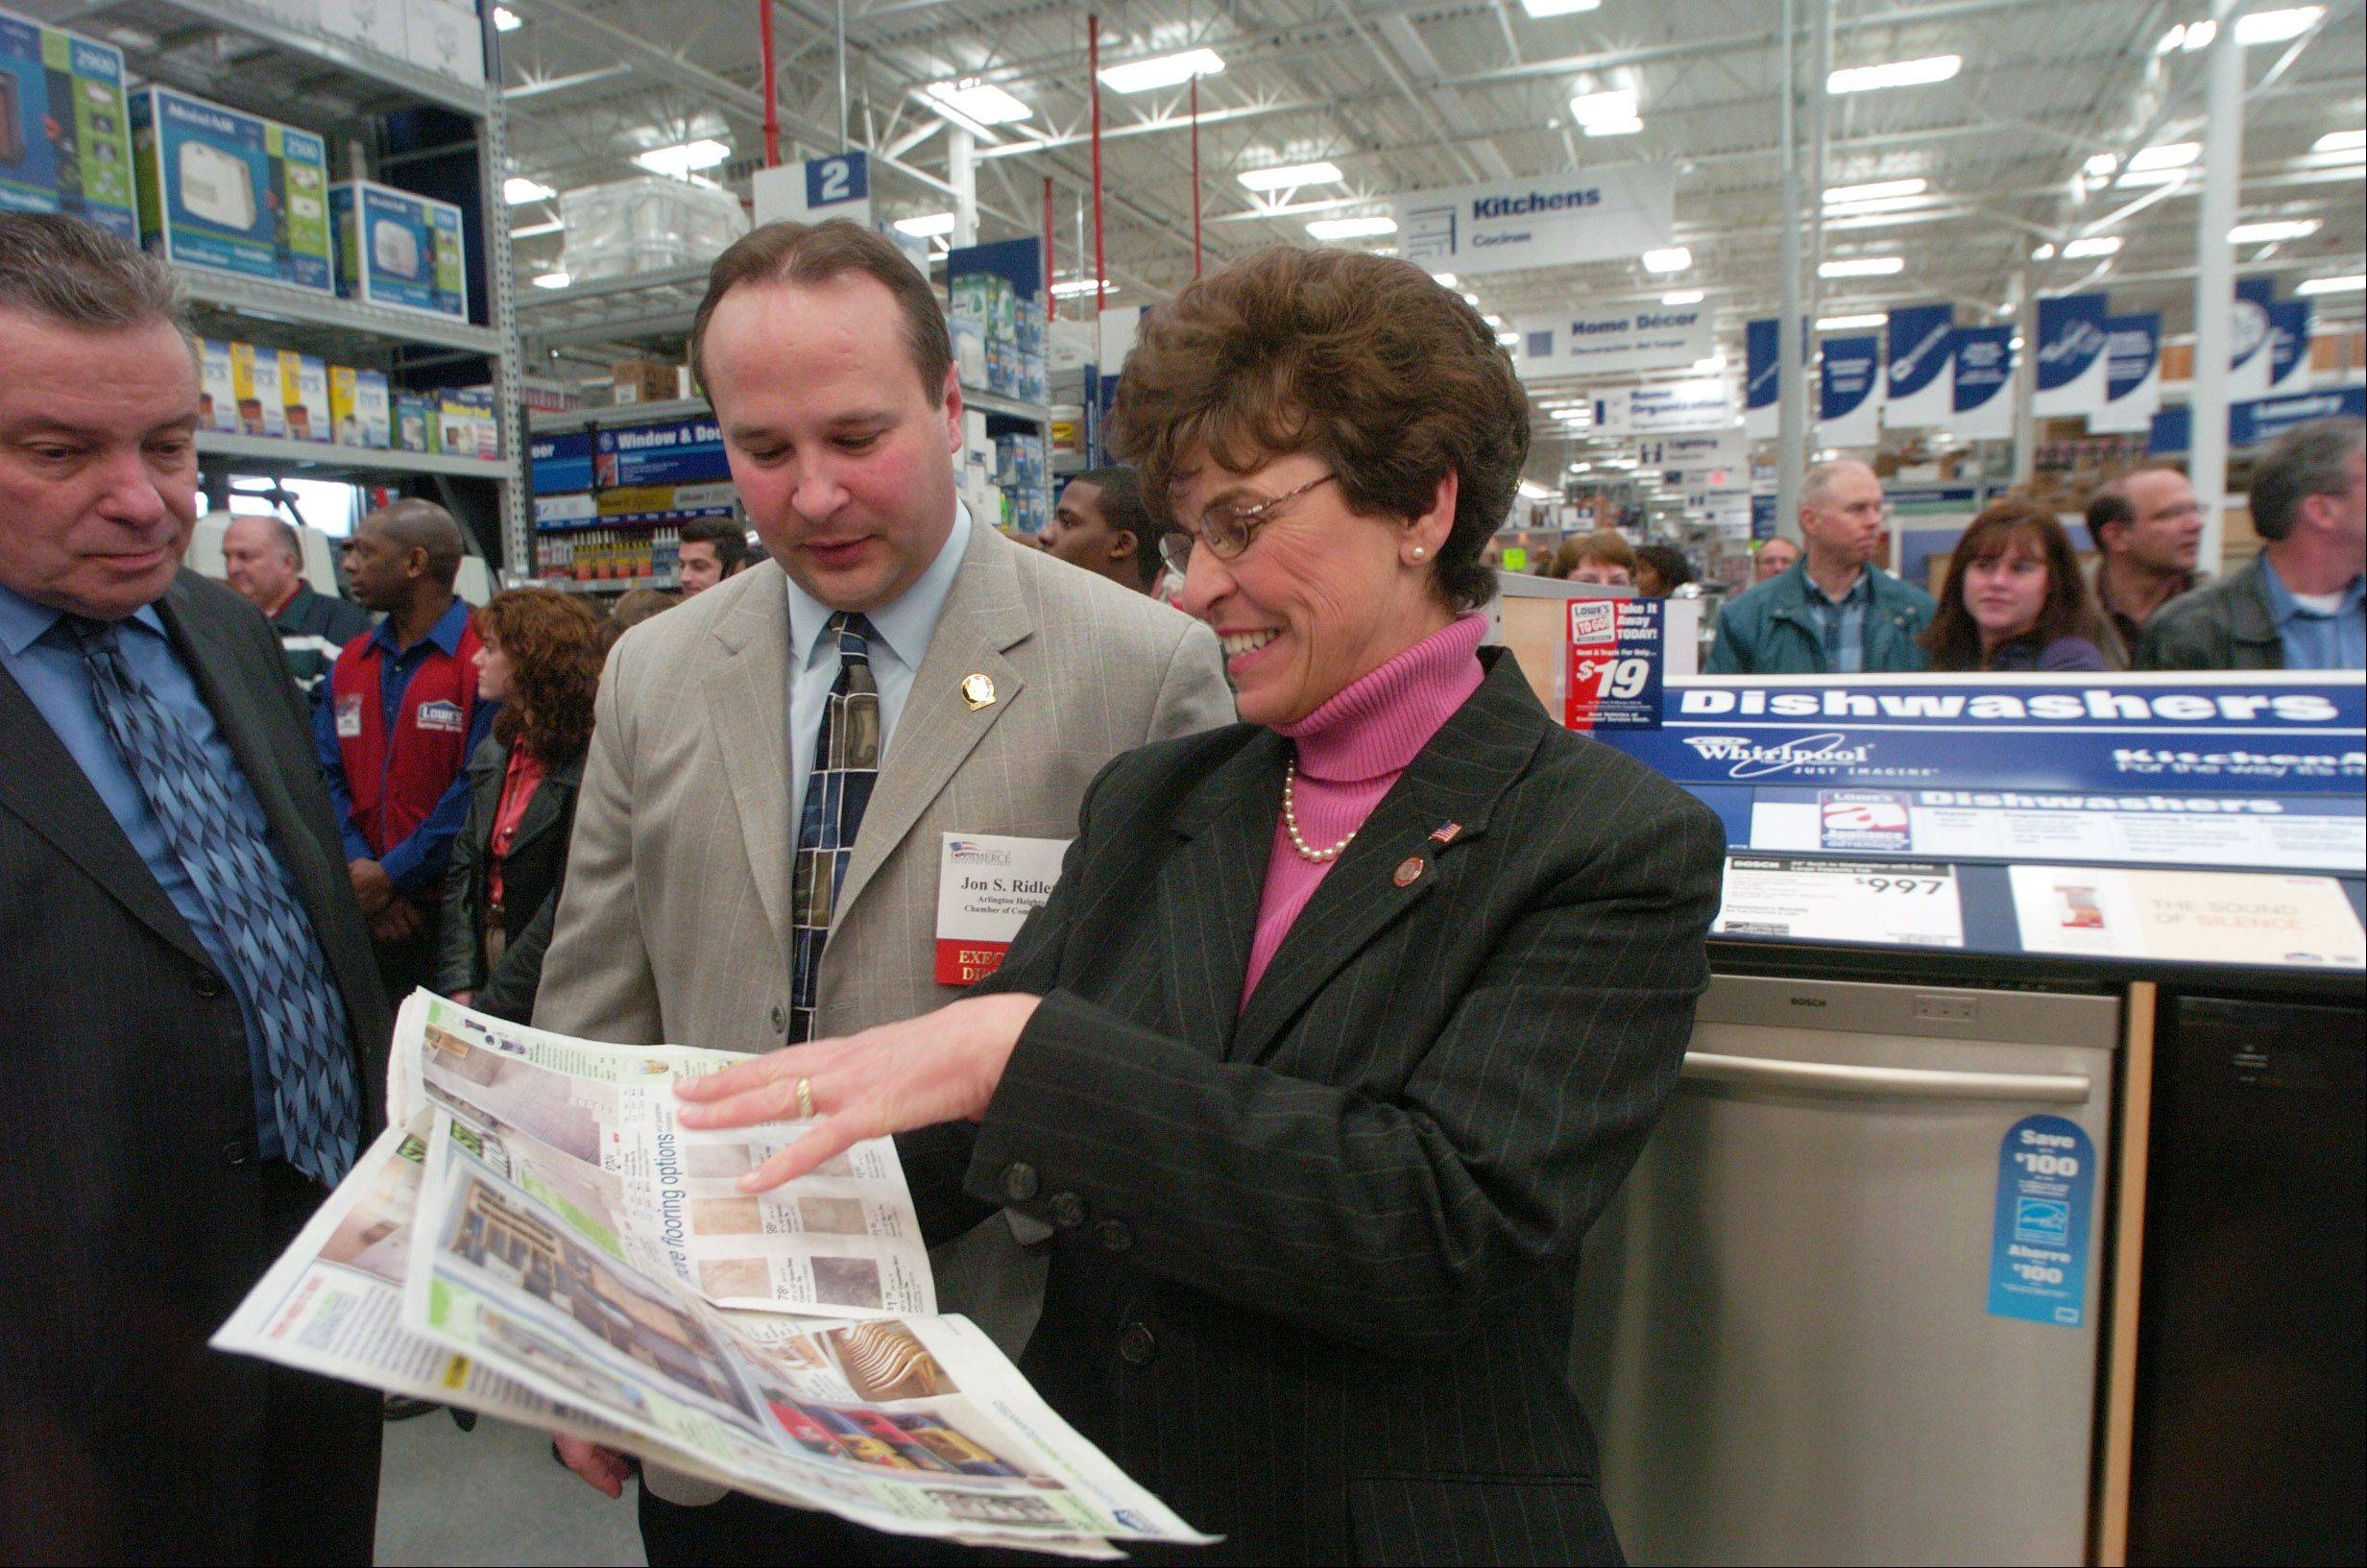 The mayor and Jon Ridler, executive director of the Chamber of Commerce, flip through a sales pamphlet at the opening of the Arlington Heights Lowe's on Jan. 11, 2006.